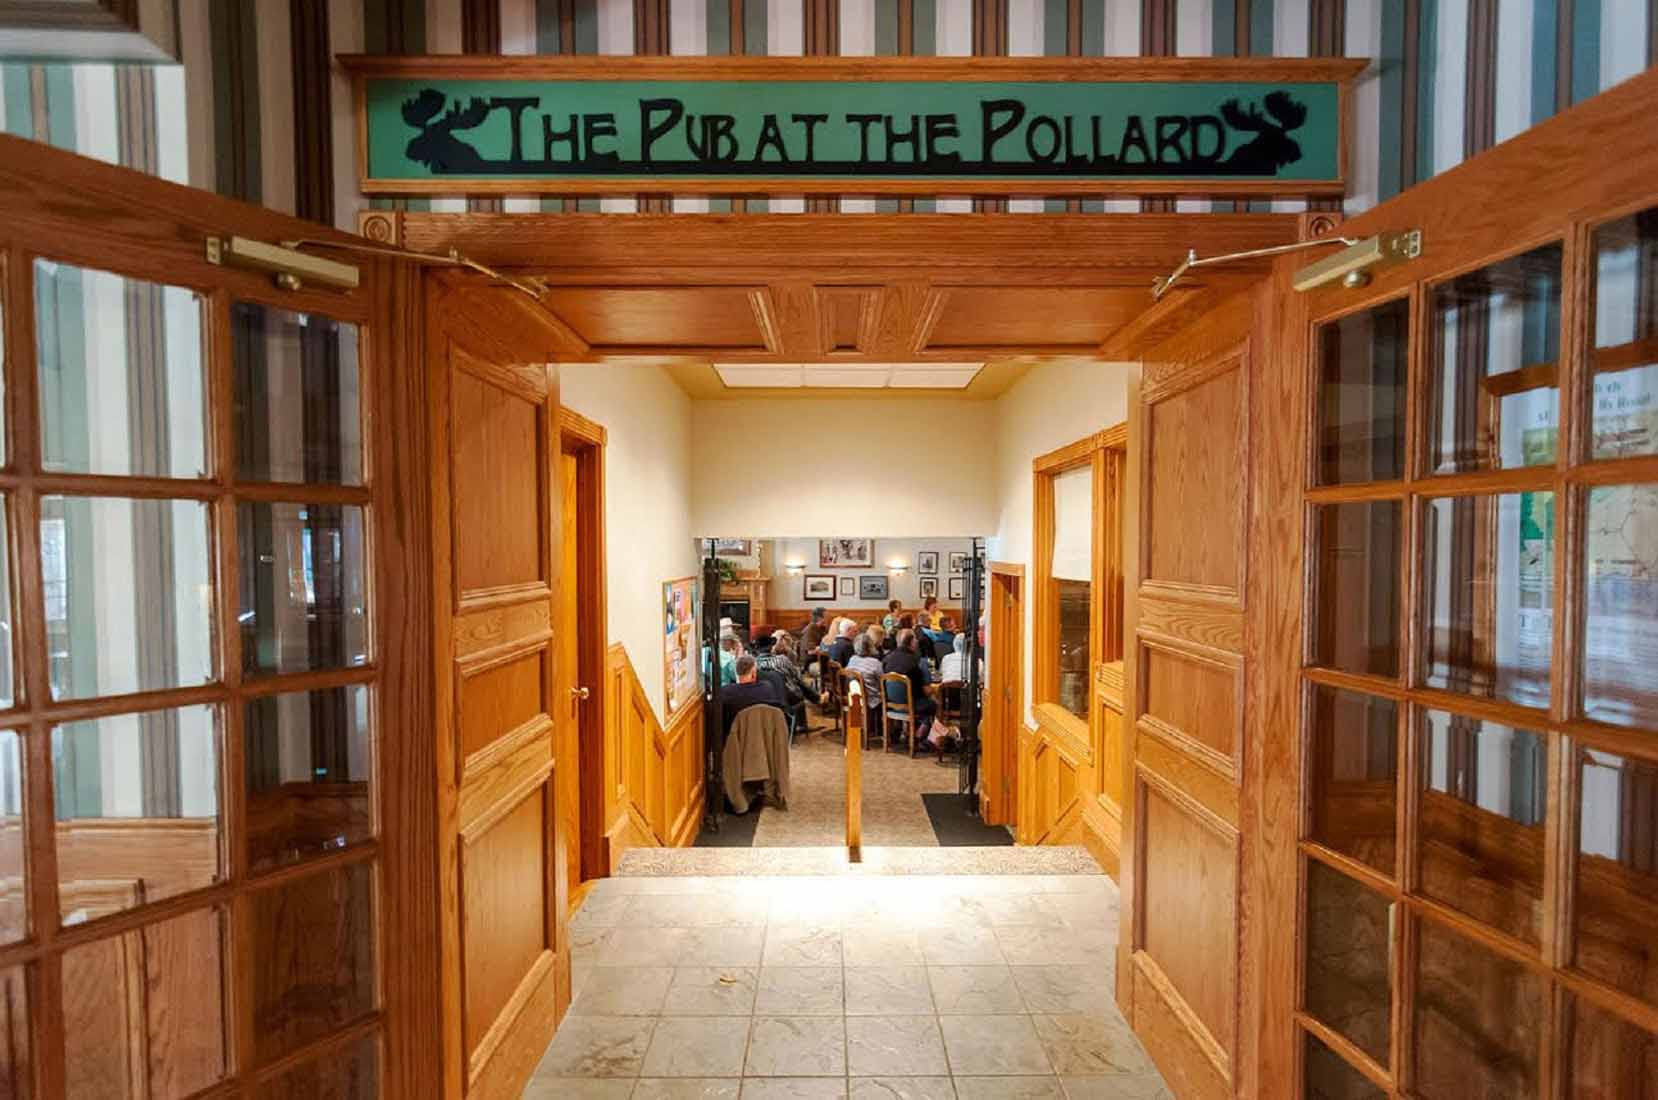 The Pub at The Pollard profile image